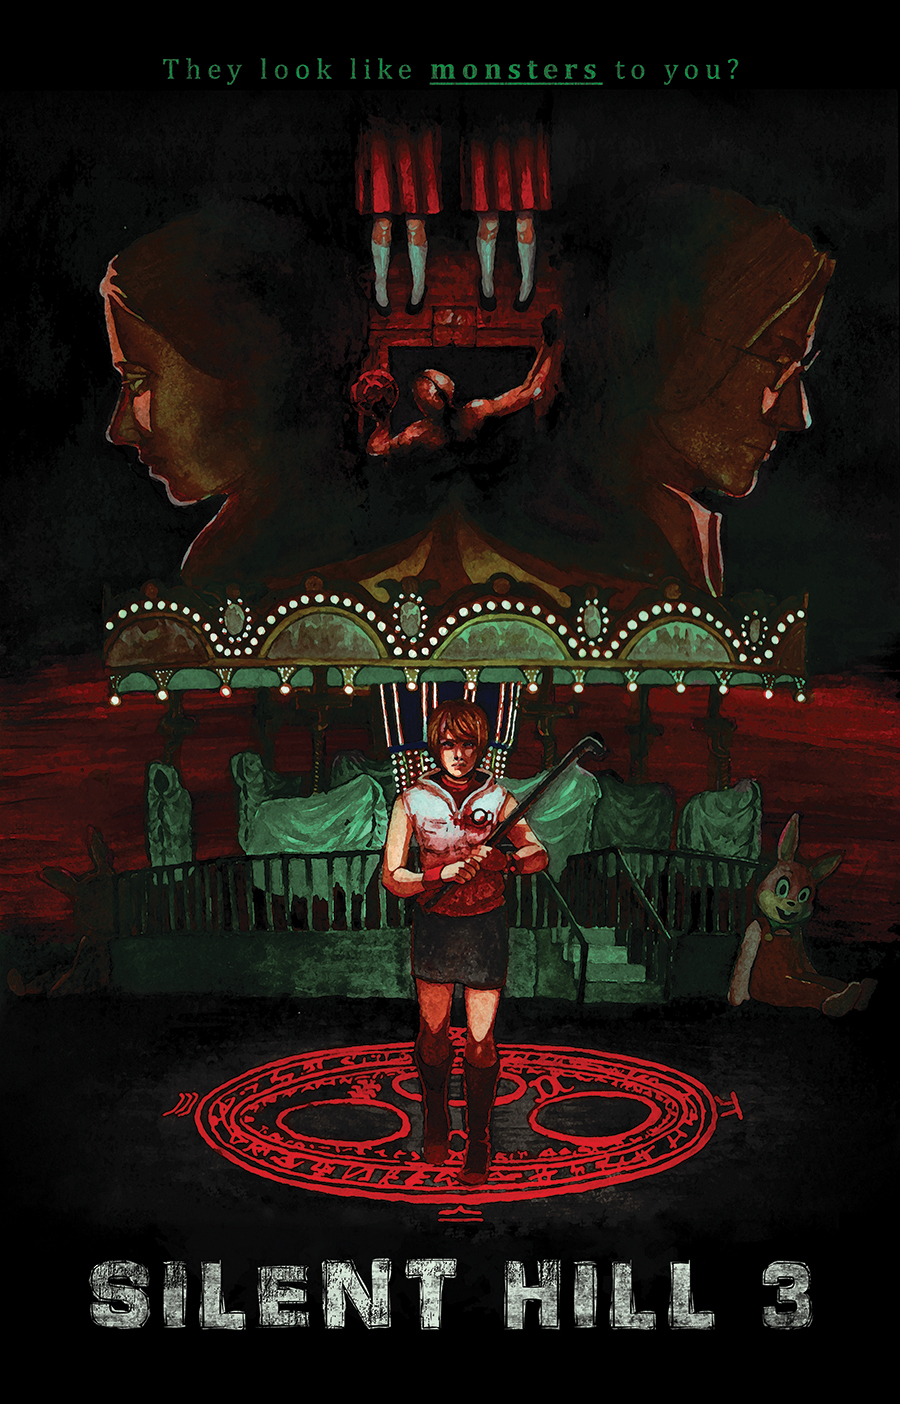 Silent Hill 3 Poster Print 11x17 Art Of Michelle Stanford Online Store Powered By Storenvy